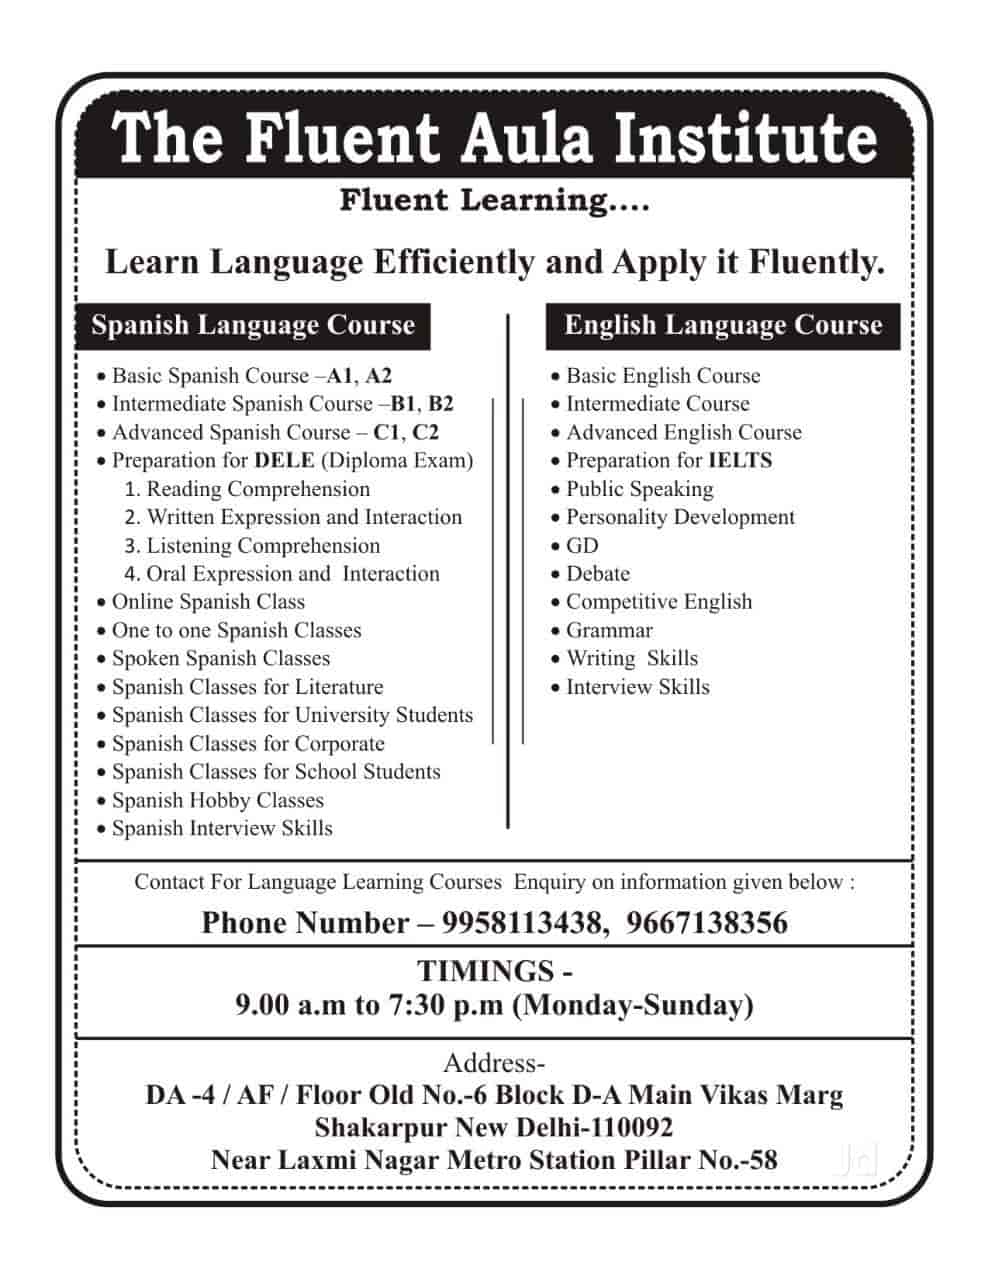 The Fluent Aula Institute Photos, Laxmi Nagar, Delhi- Pictures